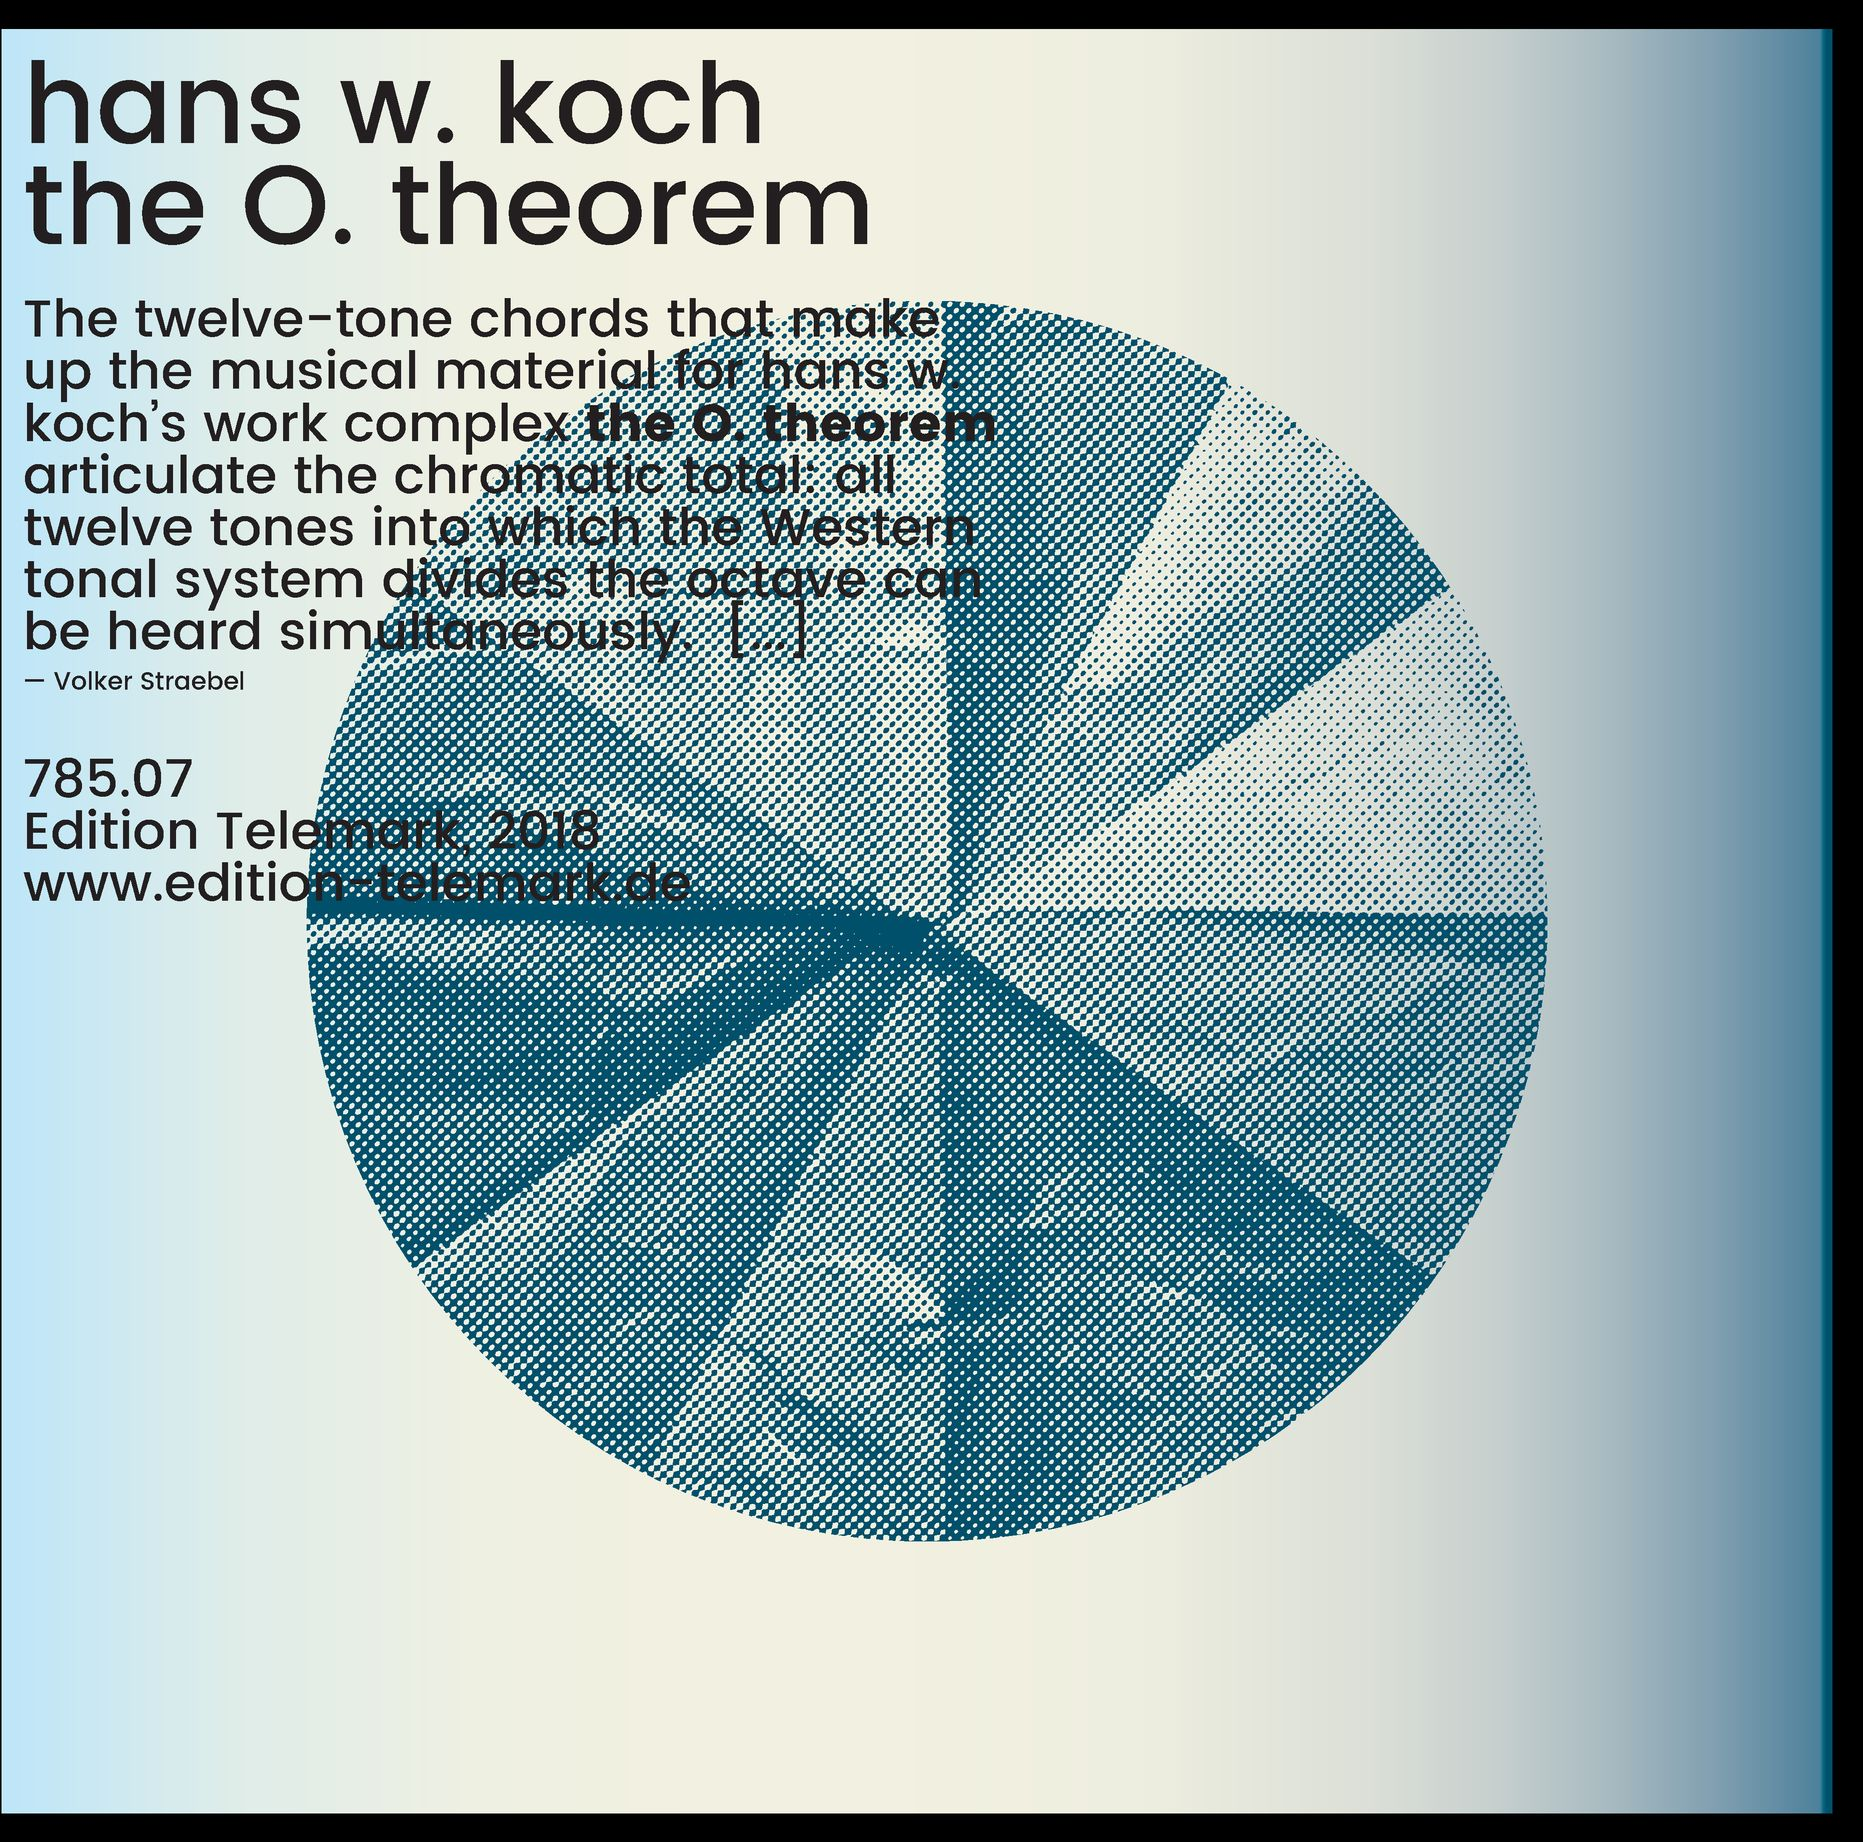 abd30fb586a0 hans w. koch (b. 1962) is a Cologne-based composer